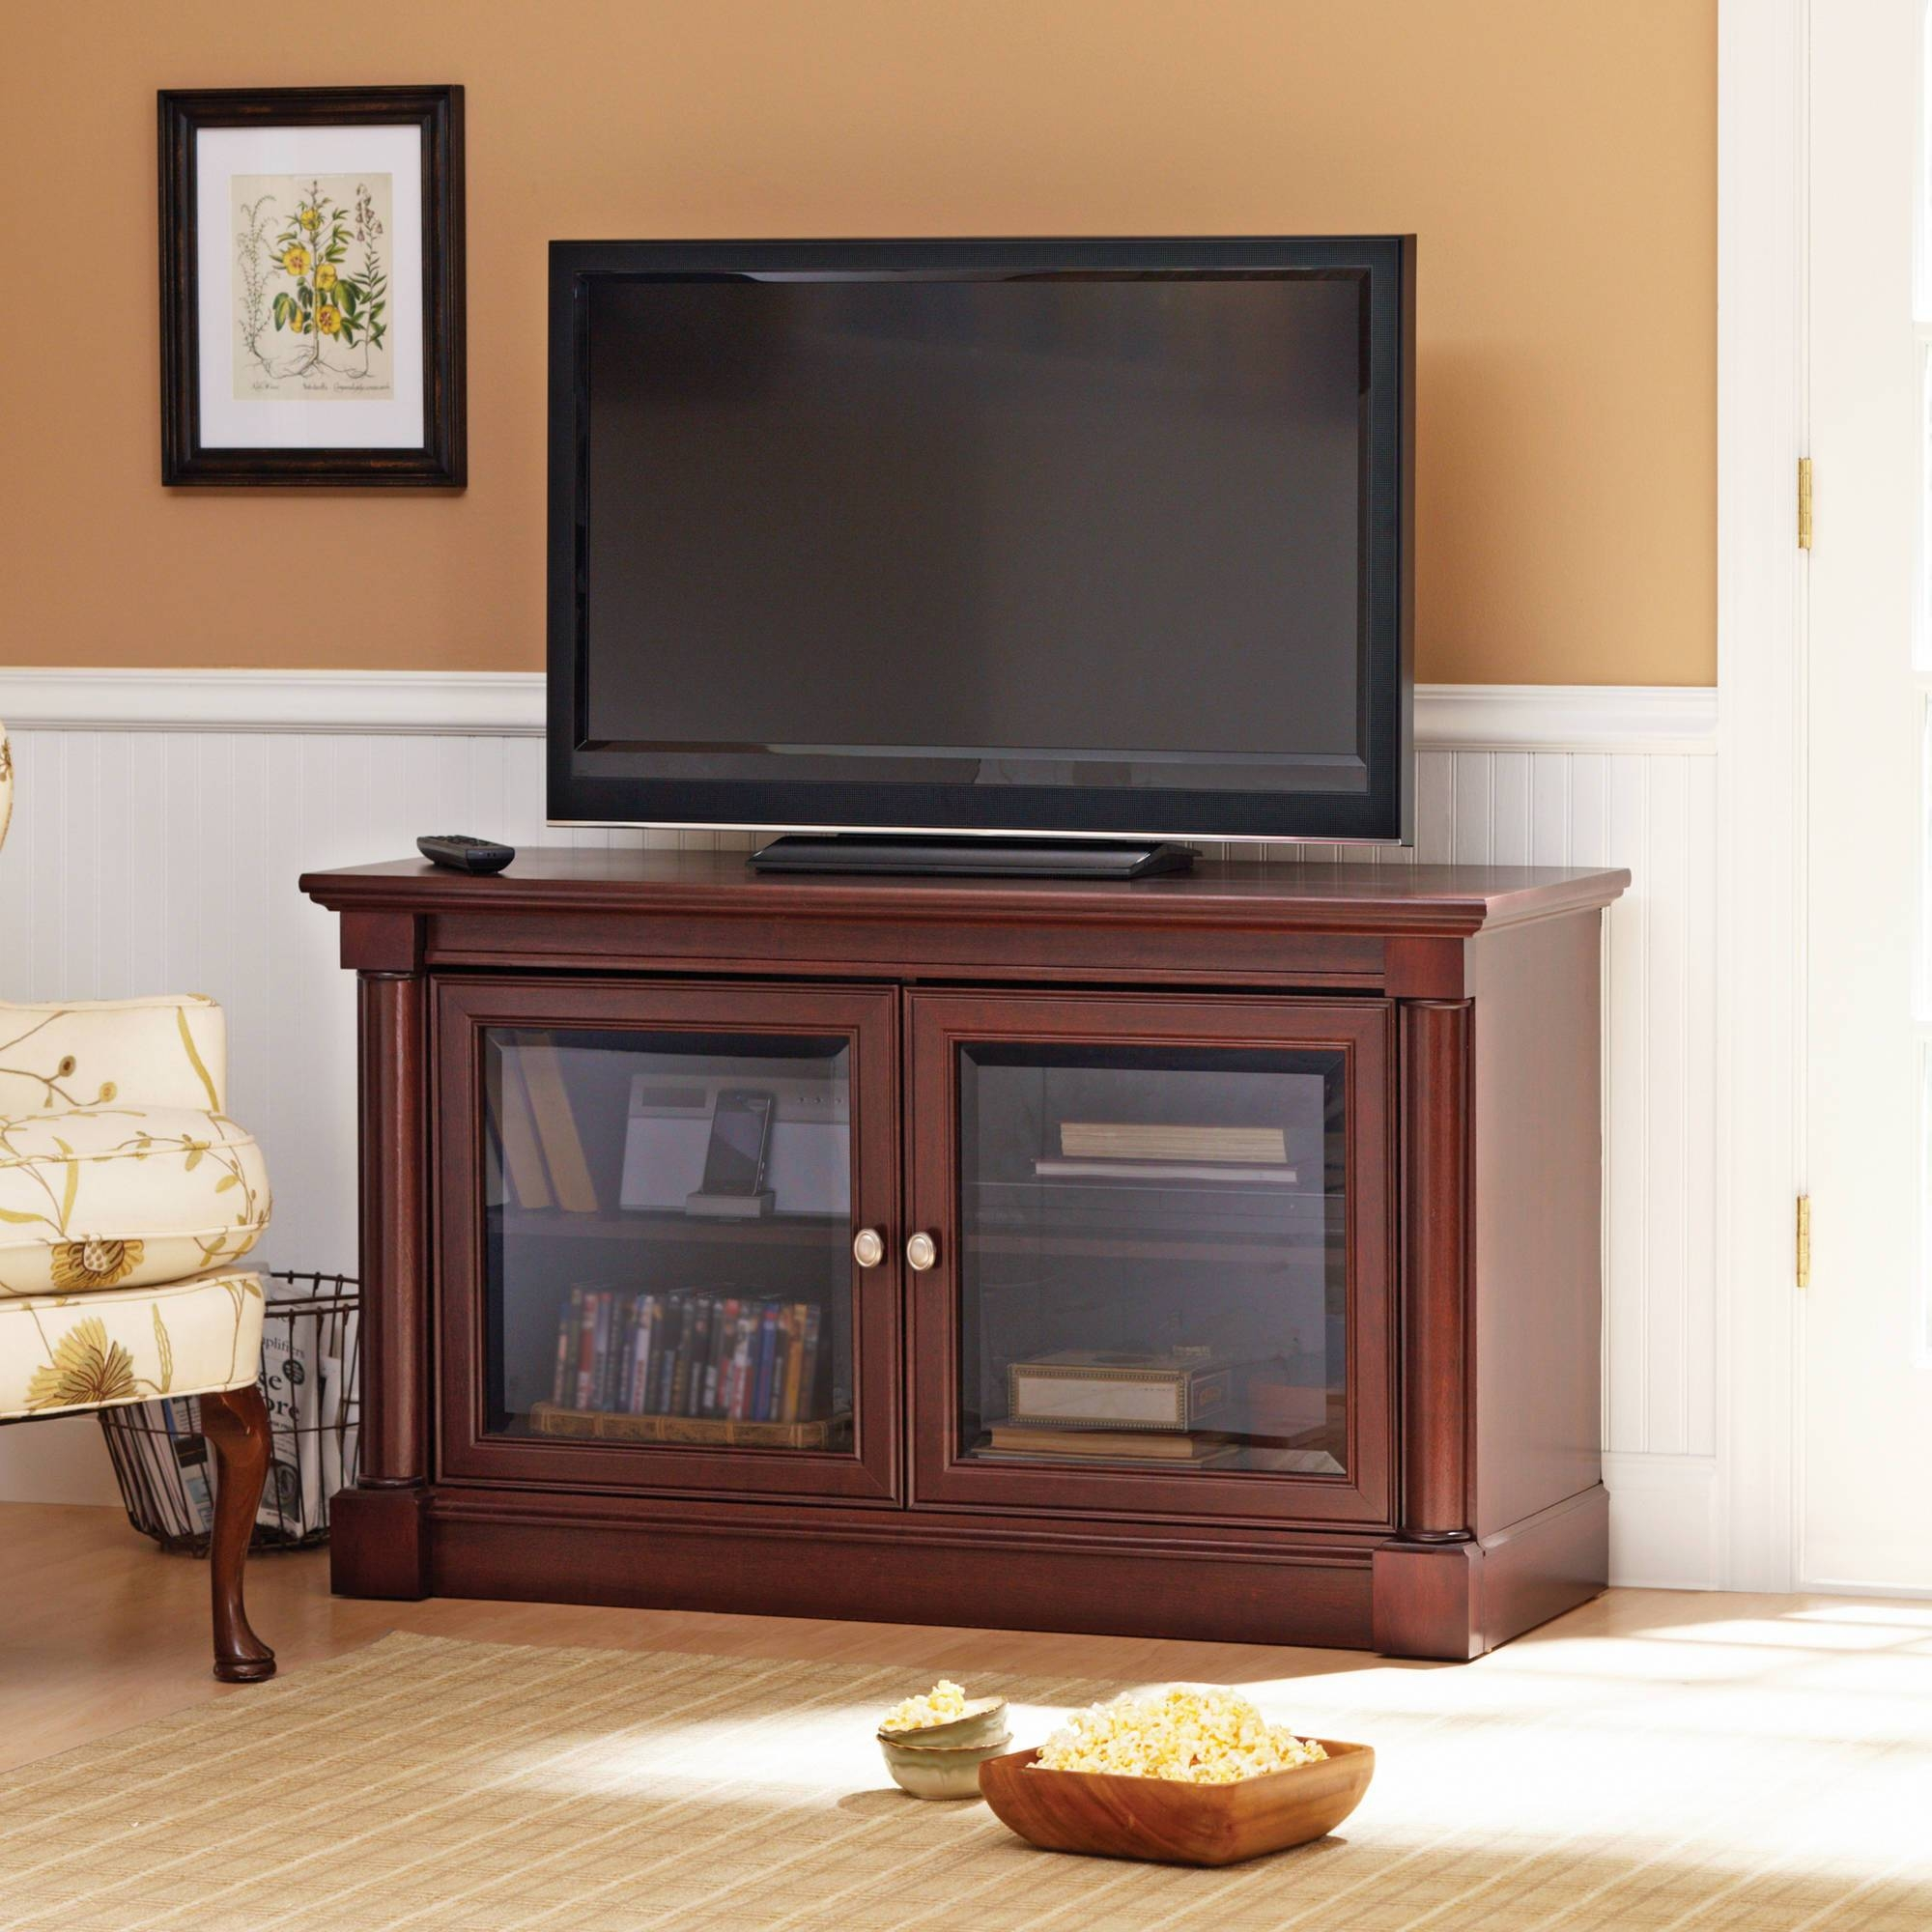 Better Homes And Gardens Ashwood Road Cherry Tv Stand, For Tvs Up throughout Cherry Wood Tv Stands (Image 2 of 15)